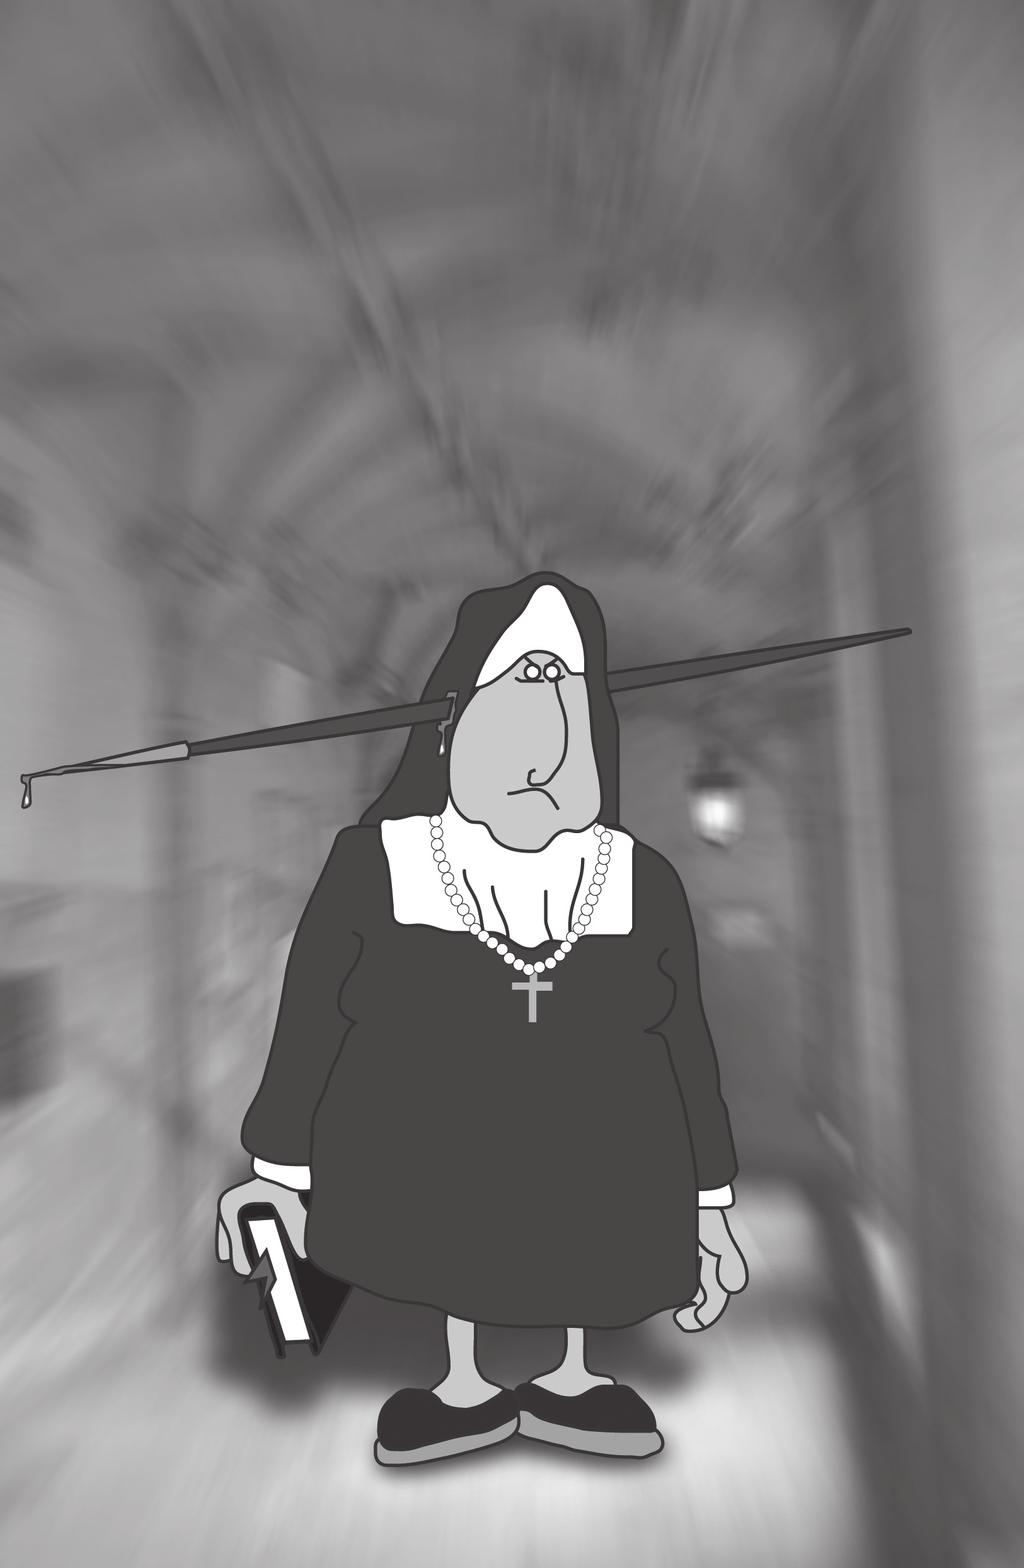 Religion and racism What s black and white and can t turn round in corridors? A nun with a javelin through her head.